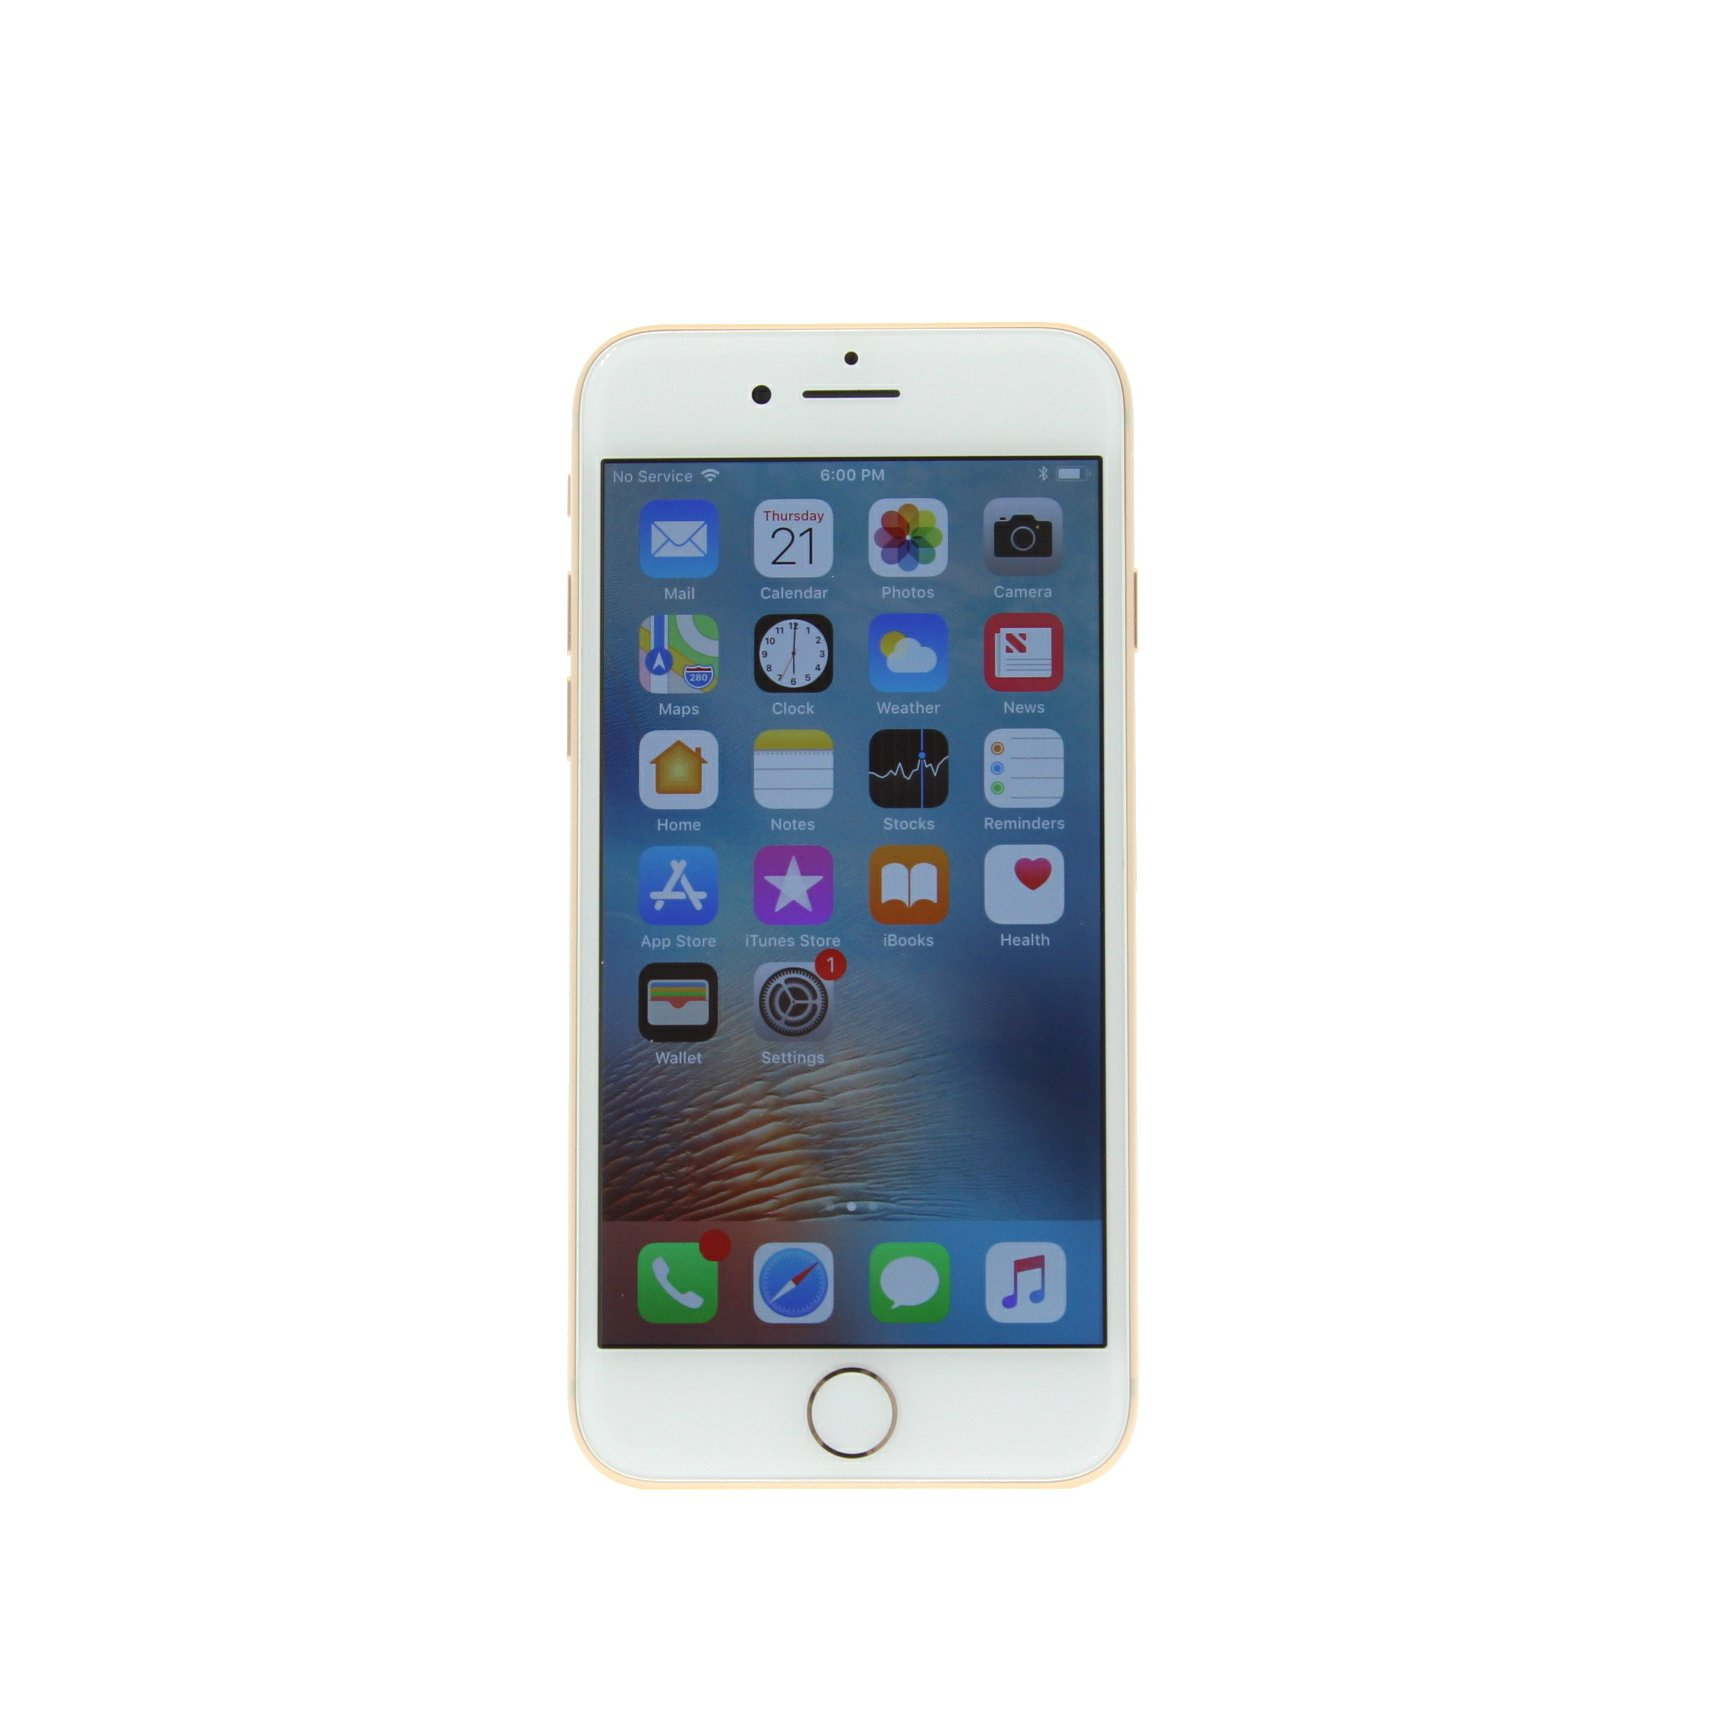 Apple iPhone 8 a1905 64GB GSM Unlocked (Certified Refurbished)